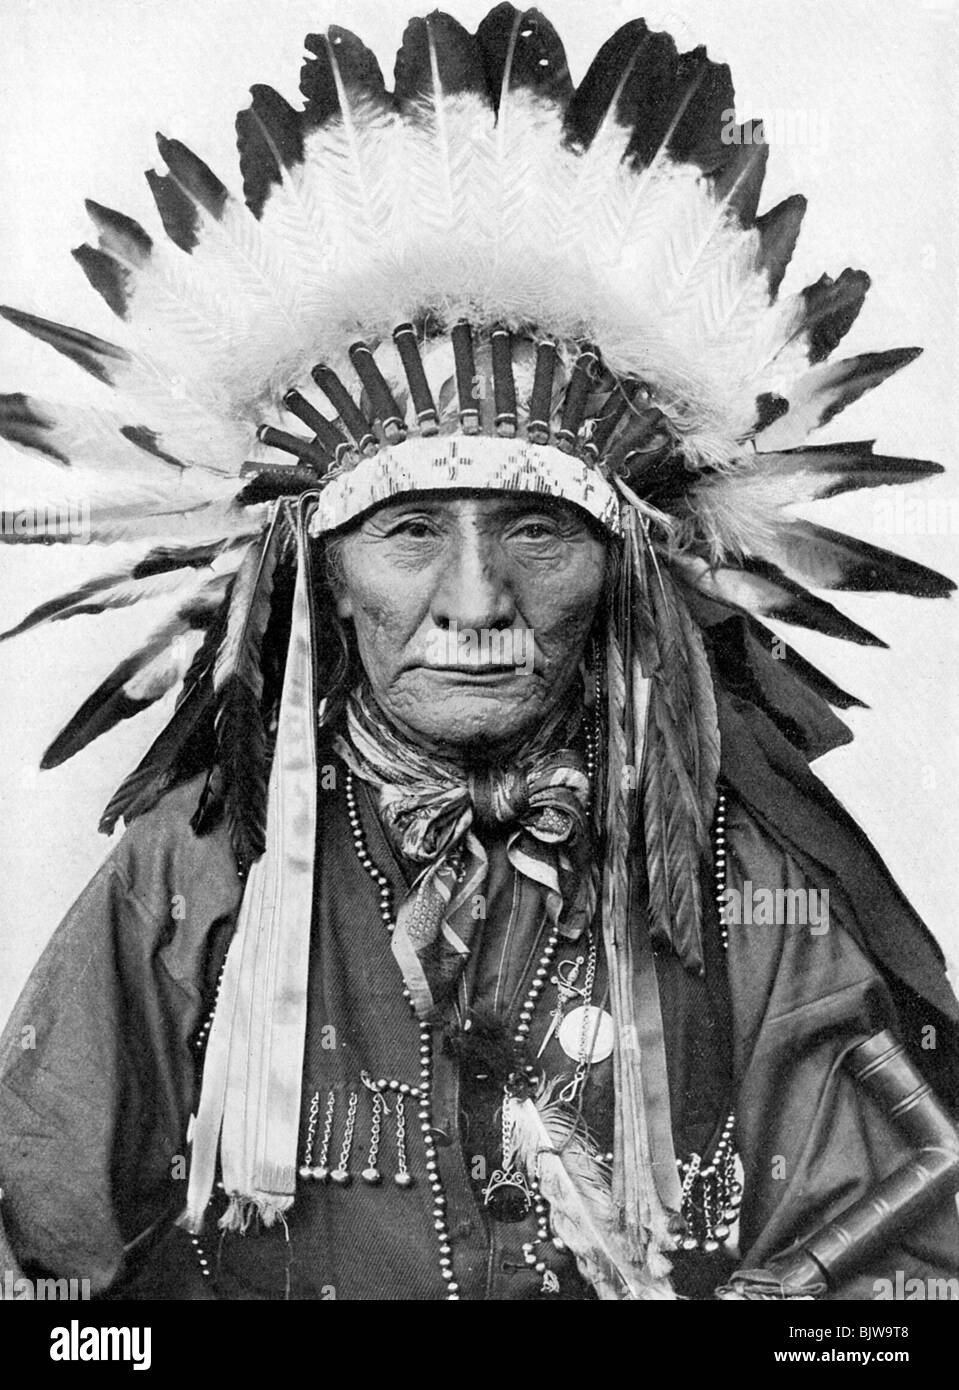 A Native American chief wearing his headdress. - Stock Image